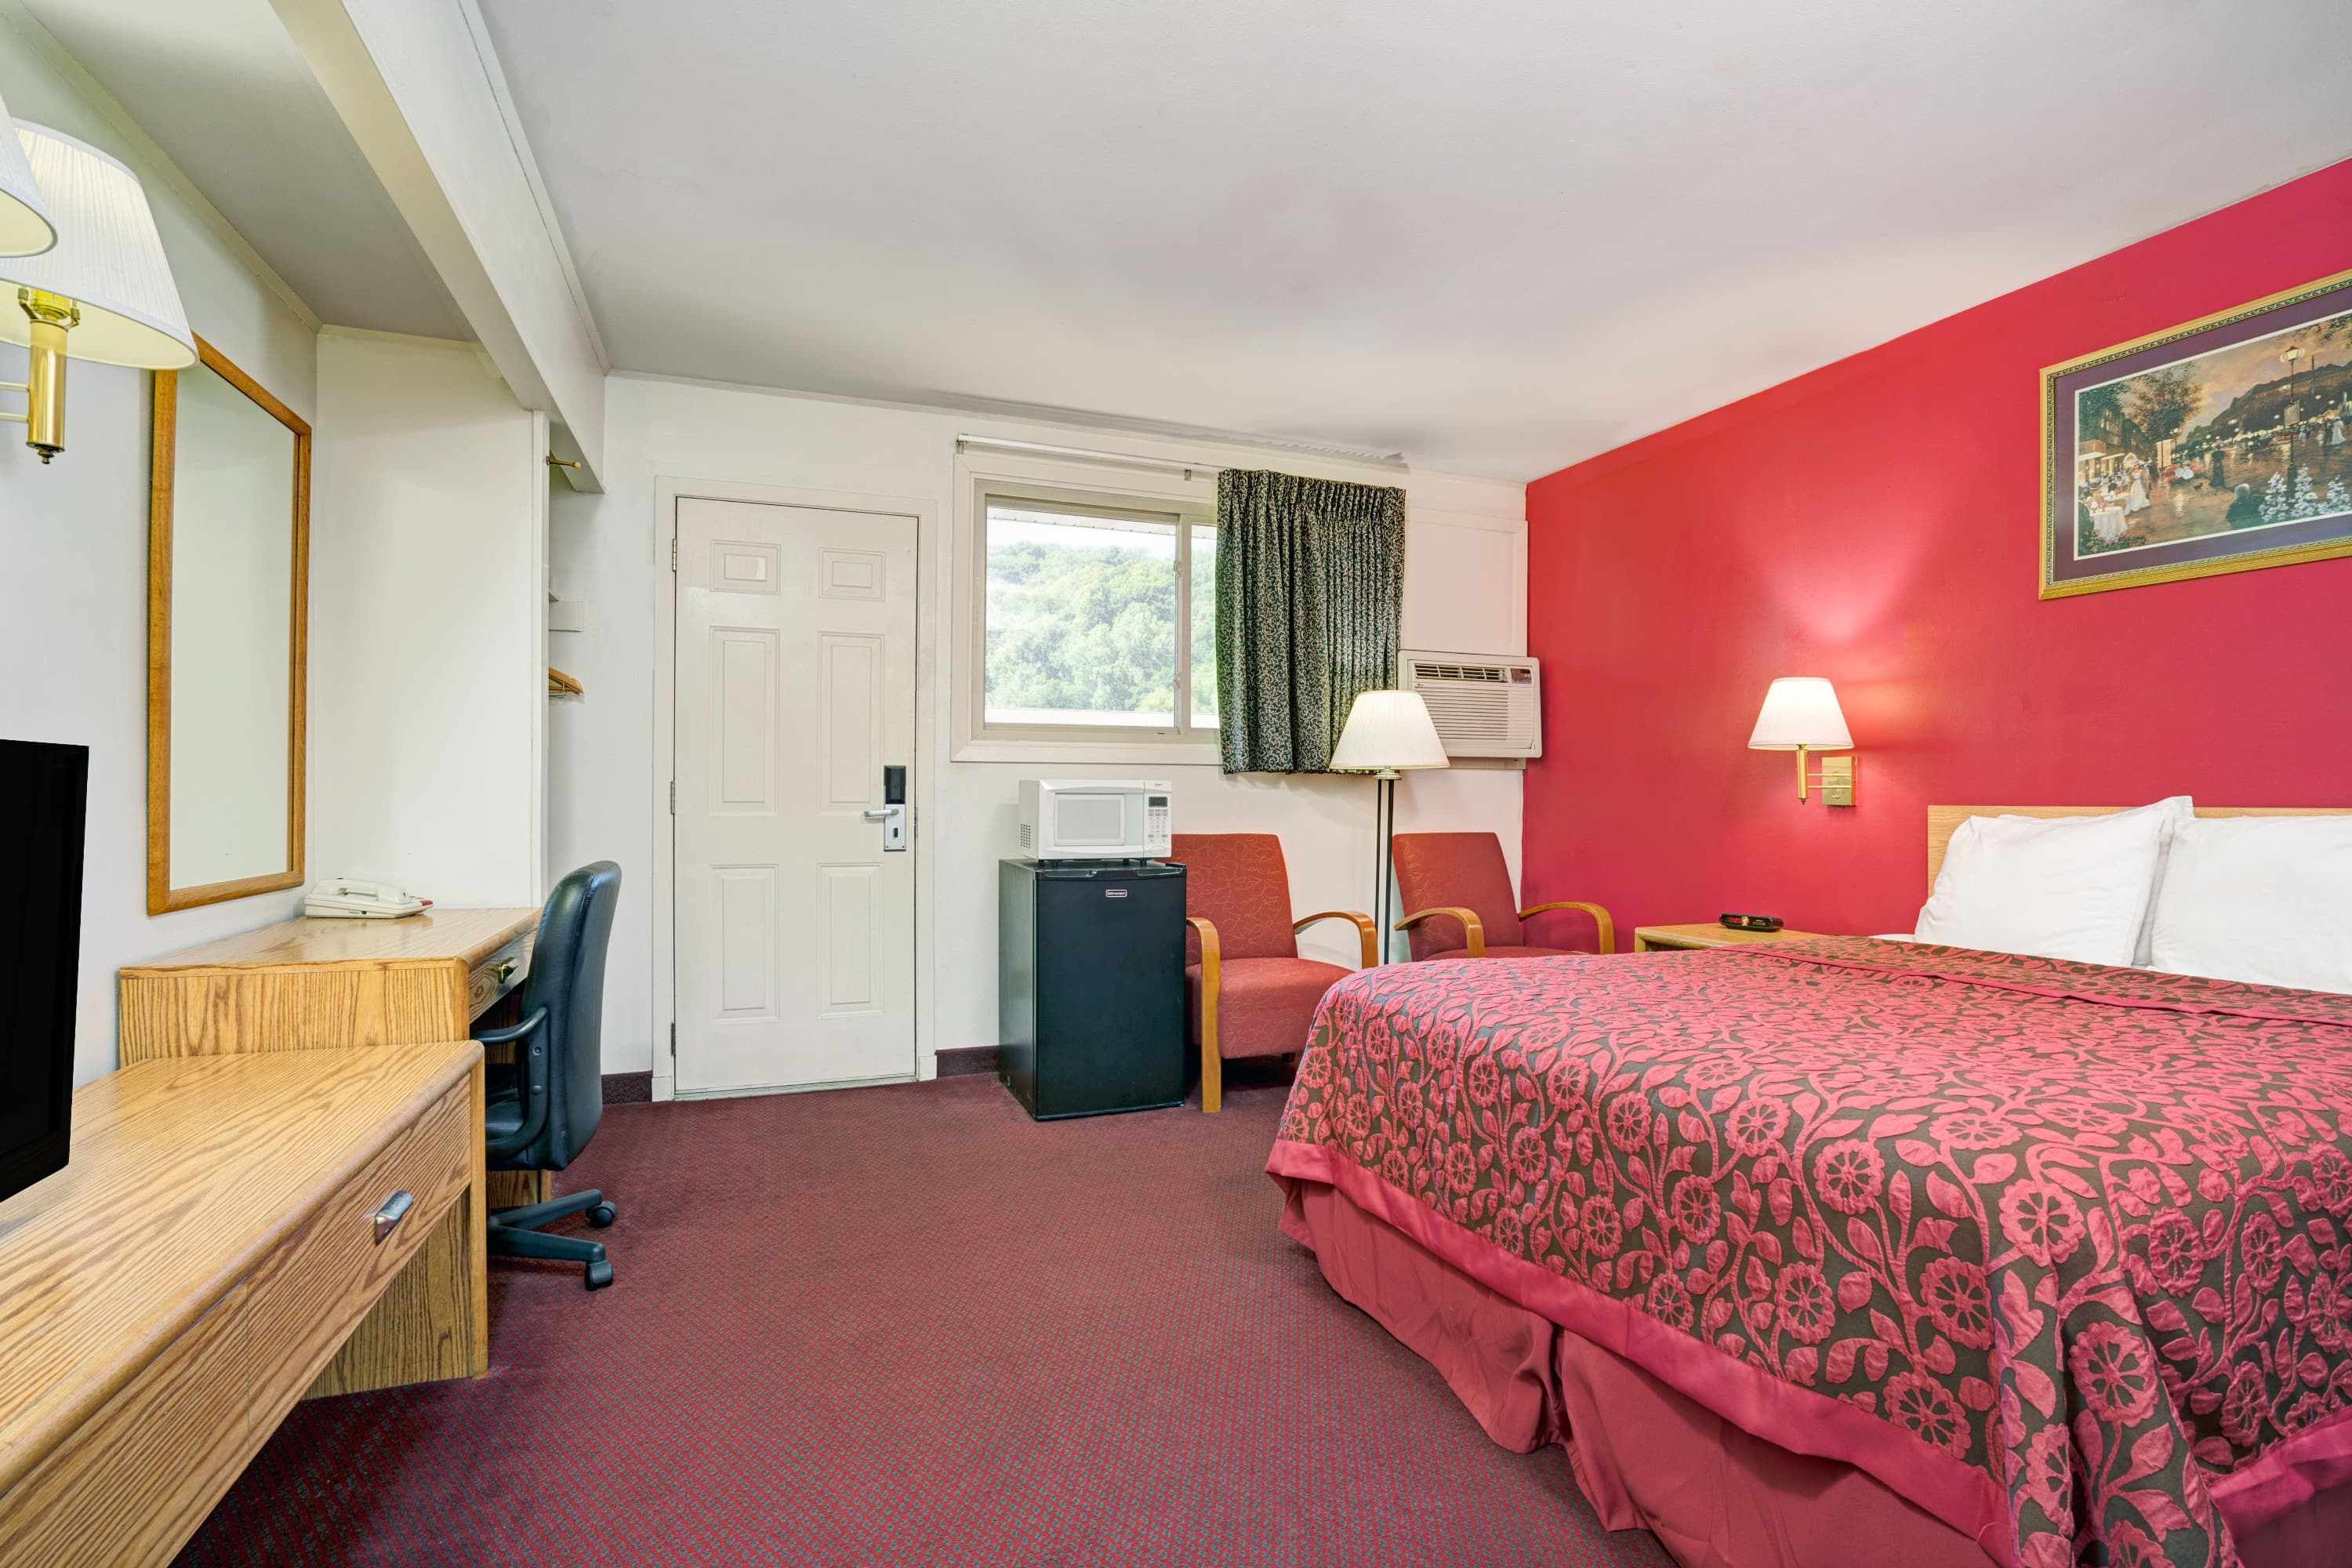 Days Inn Red Wing suite in Red Wing, Minnesota